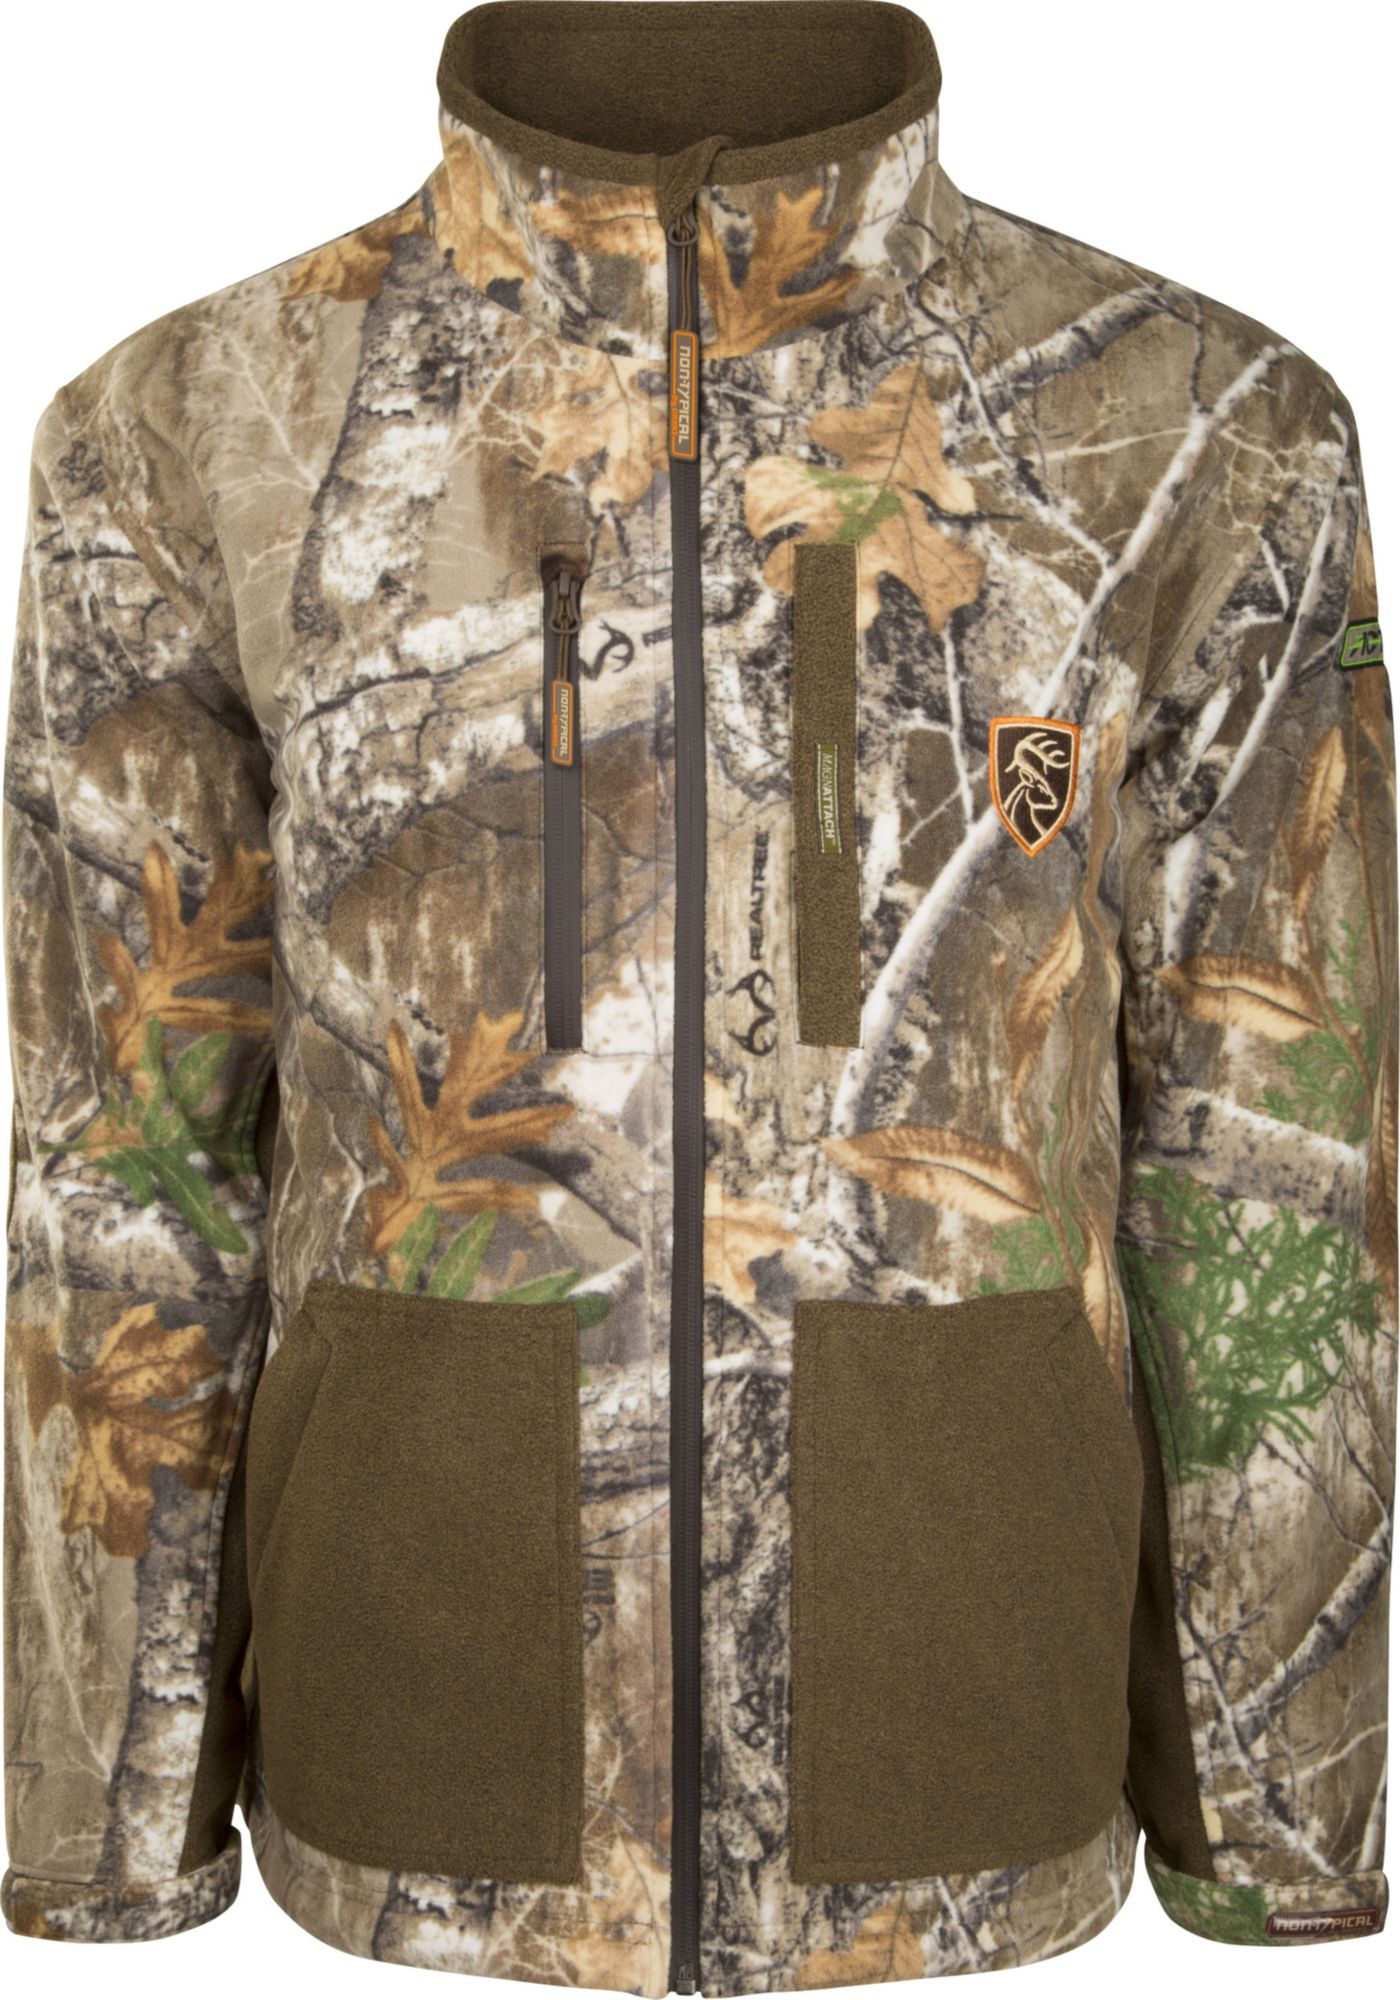 Drake Waterfowl Men's Non-Typical HydroHush Midweight Full Zip Hunting Jacket with Agion Active XL